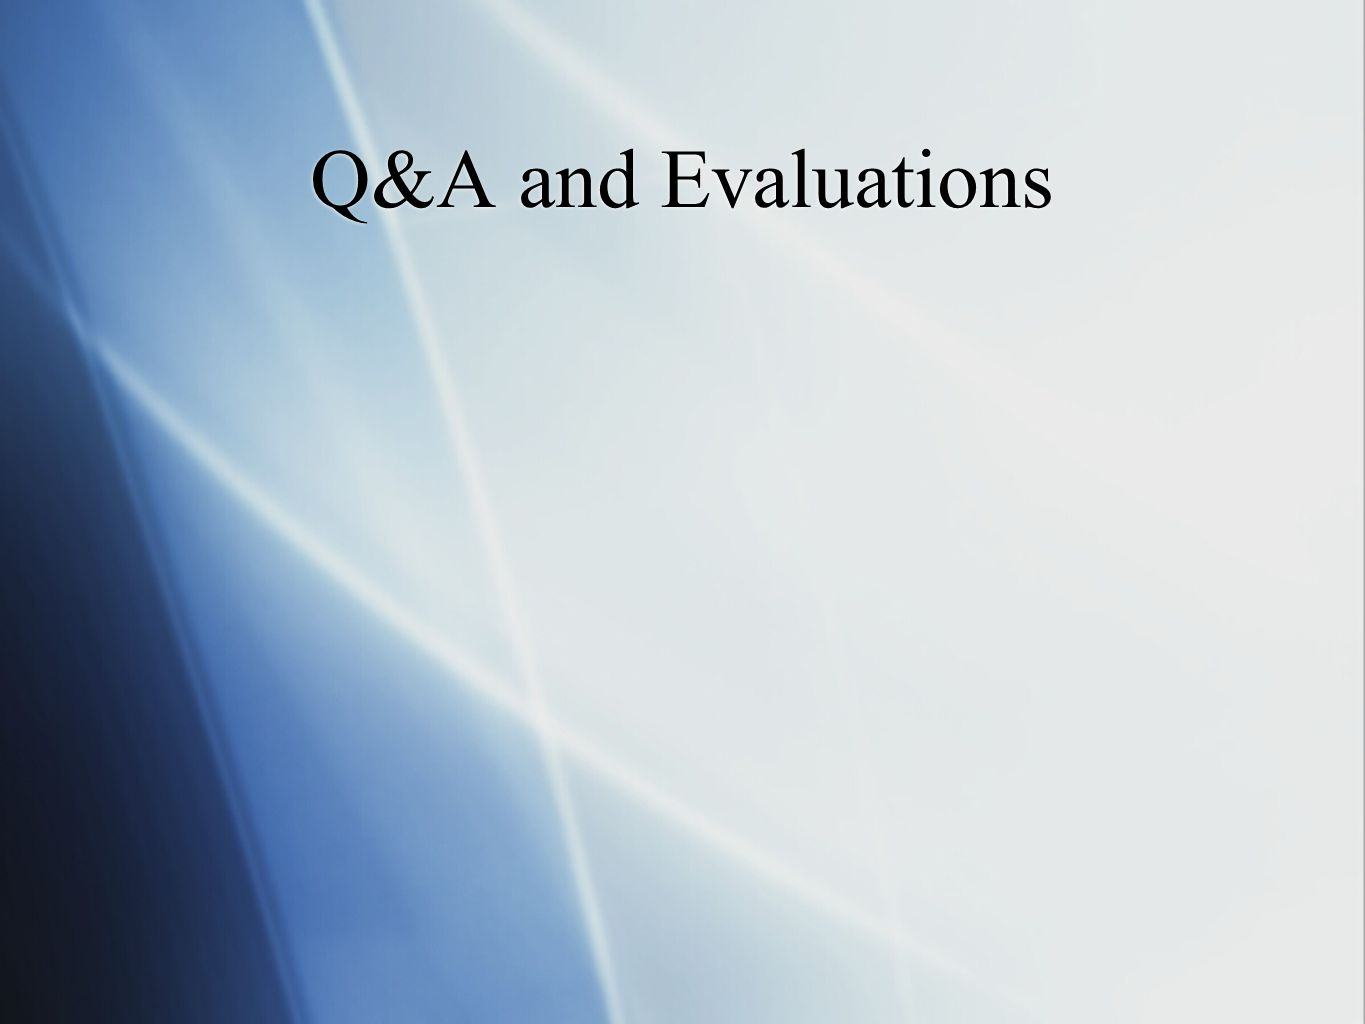 Q&A and Evaluations